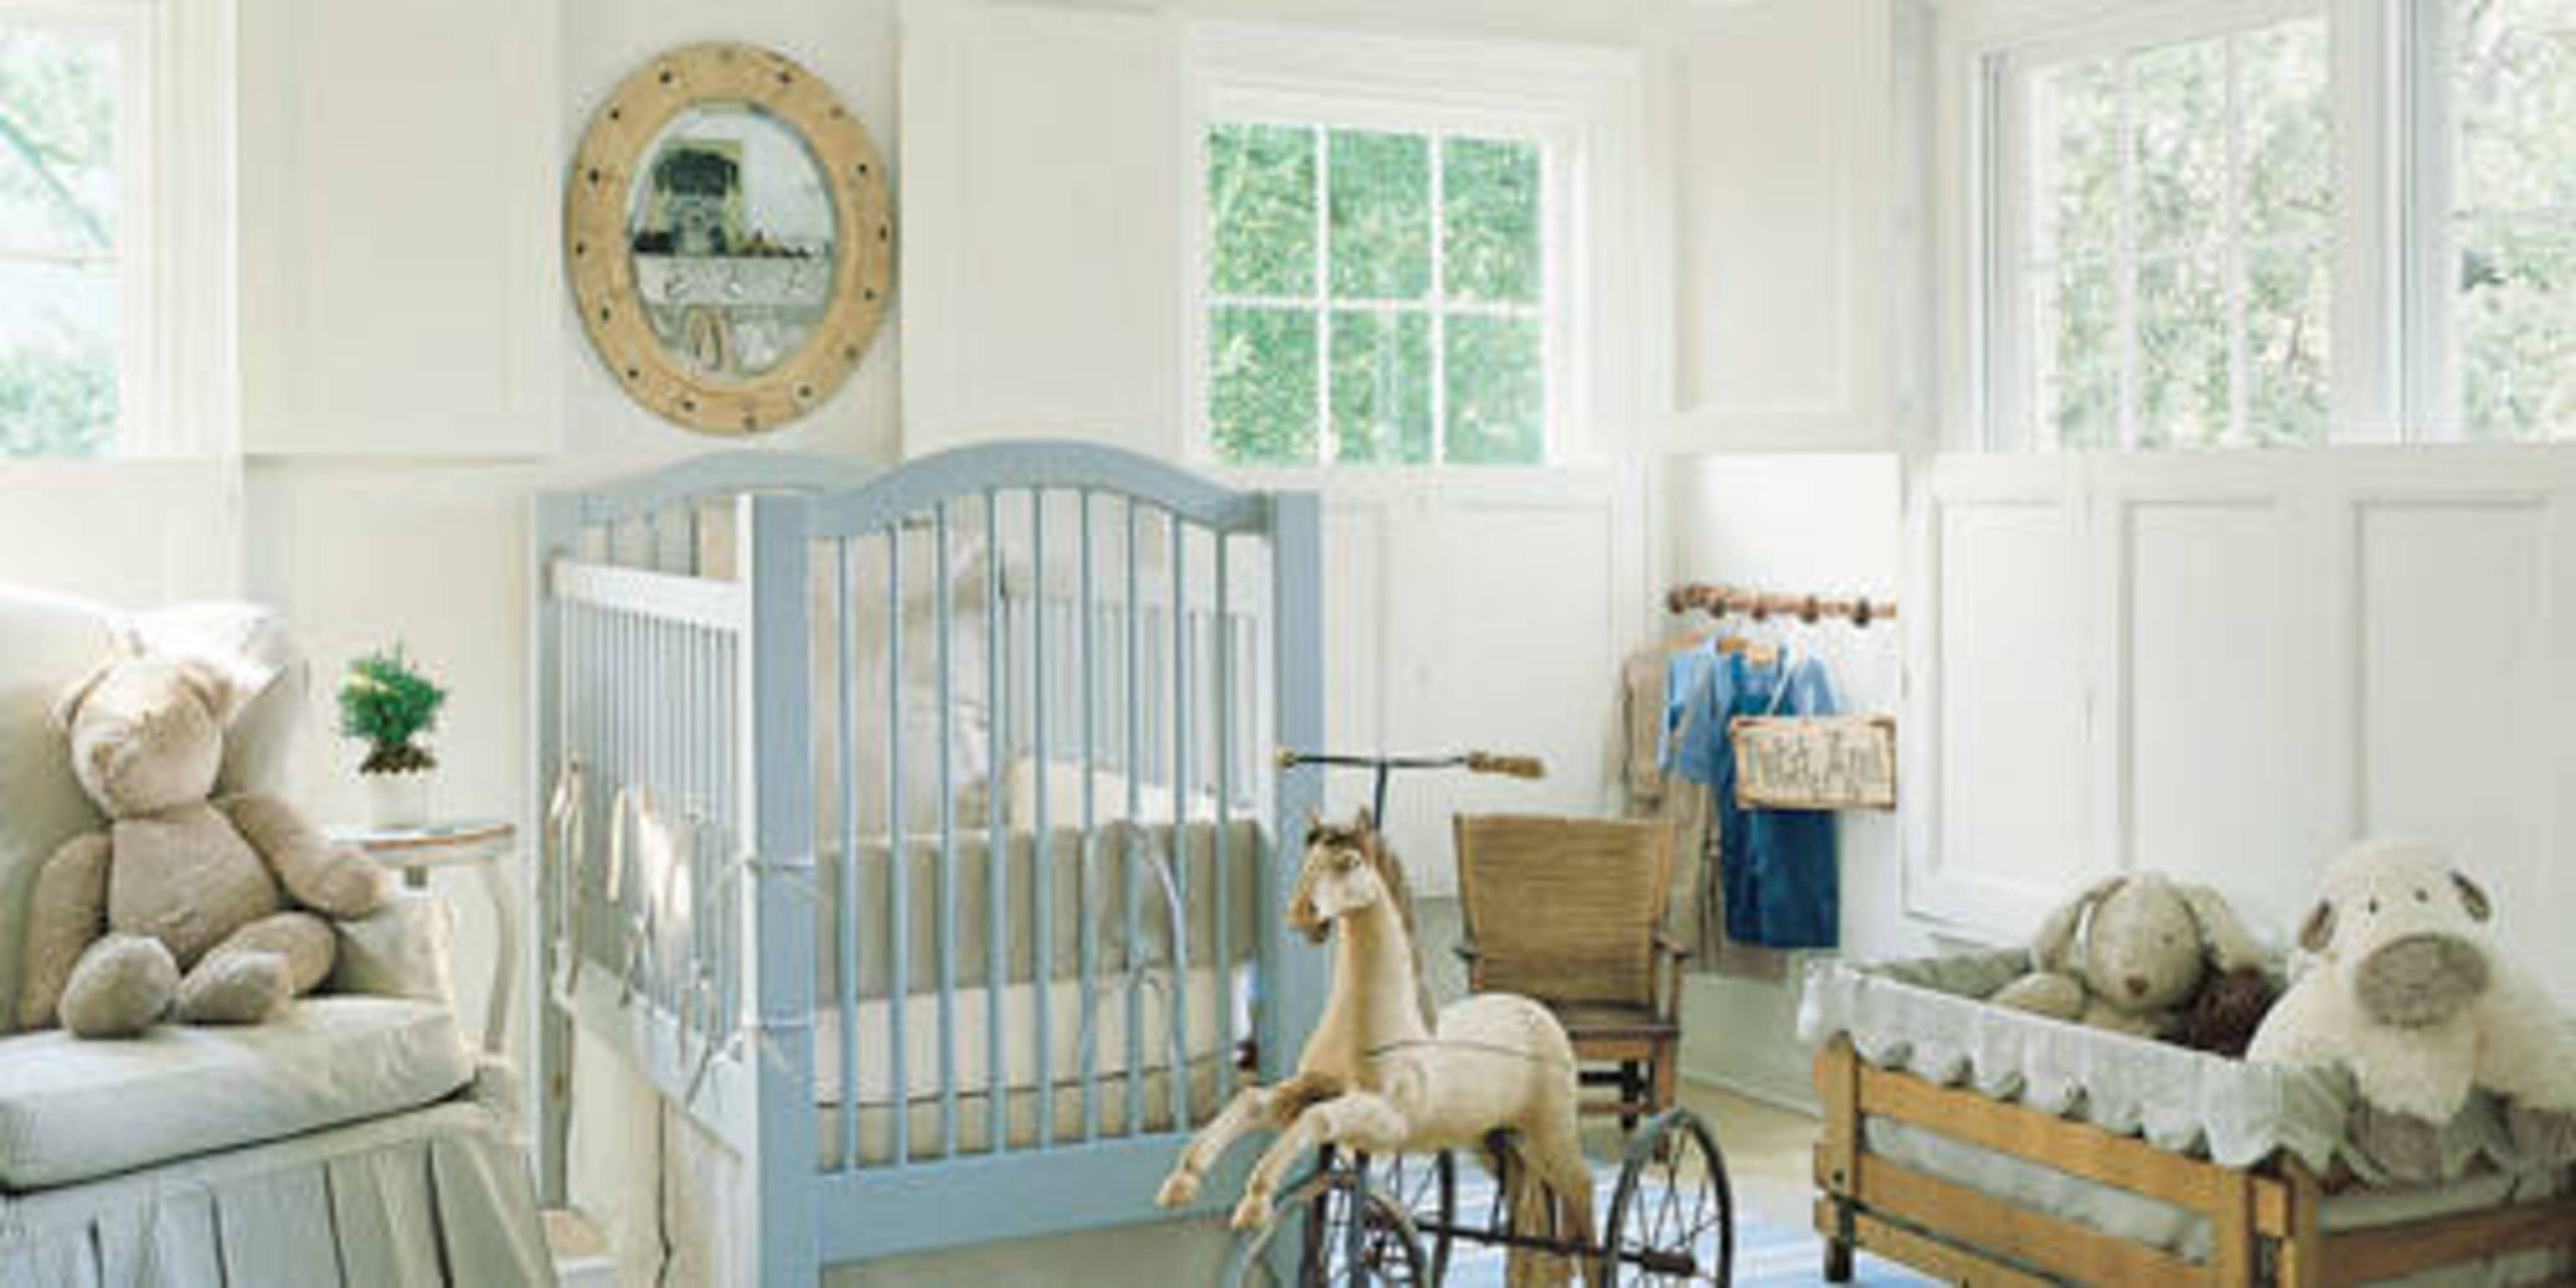 Charmant Custom Chair And Crib Bumper In Jane Shelton Ticking. Other Bedding In  Linen By Ralph